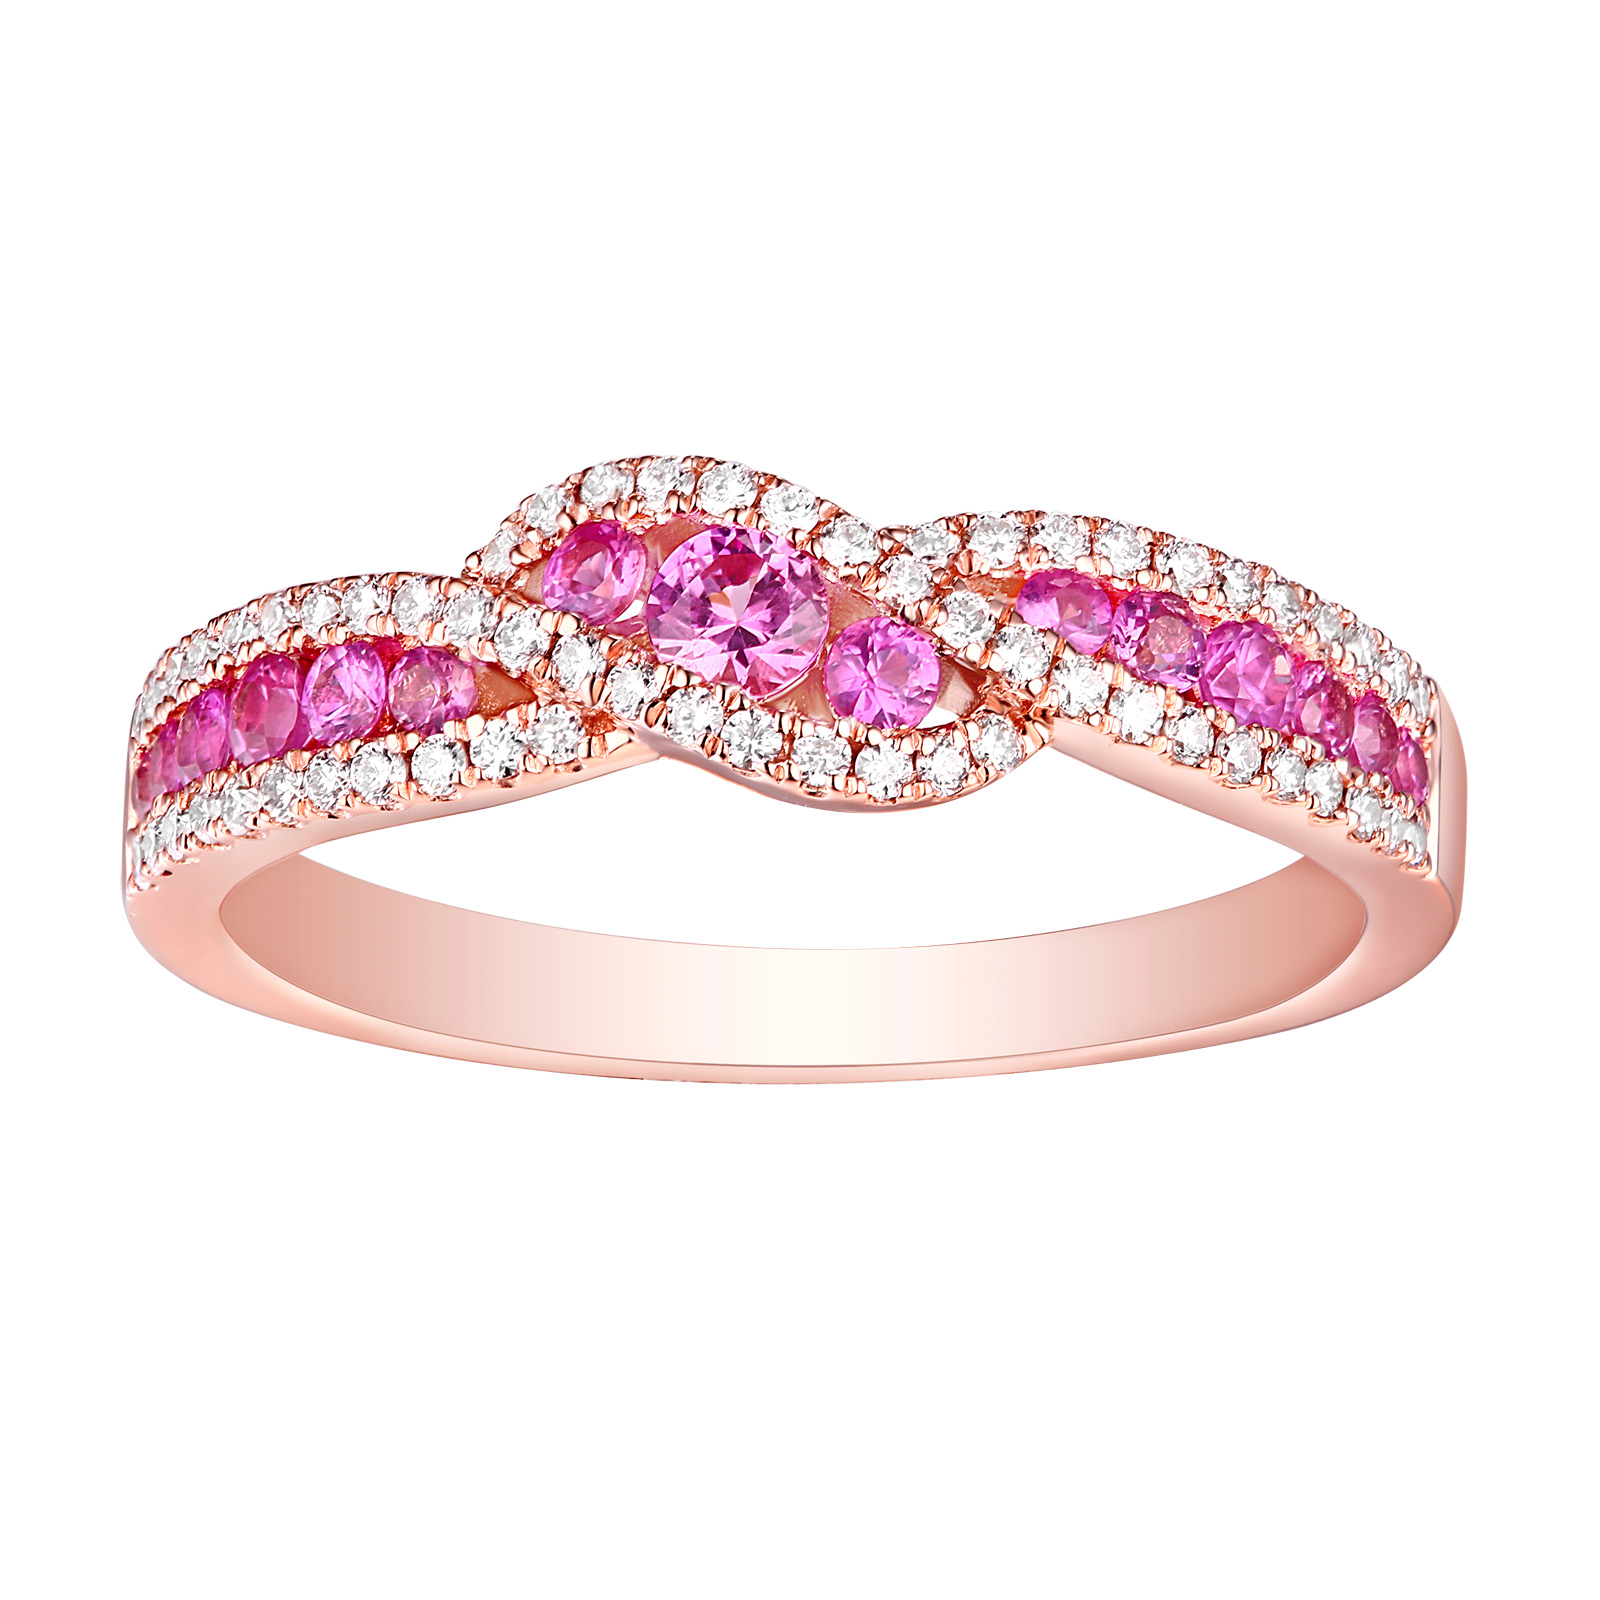 R22813PSA – 14K Rose Gold Pink Sapphire and Diamond Ring, 0.61 TCW